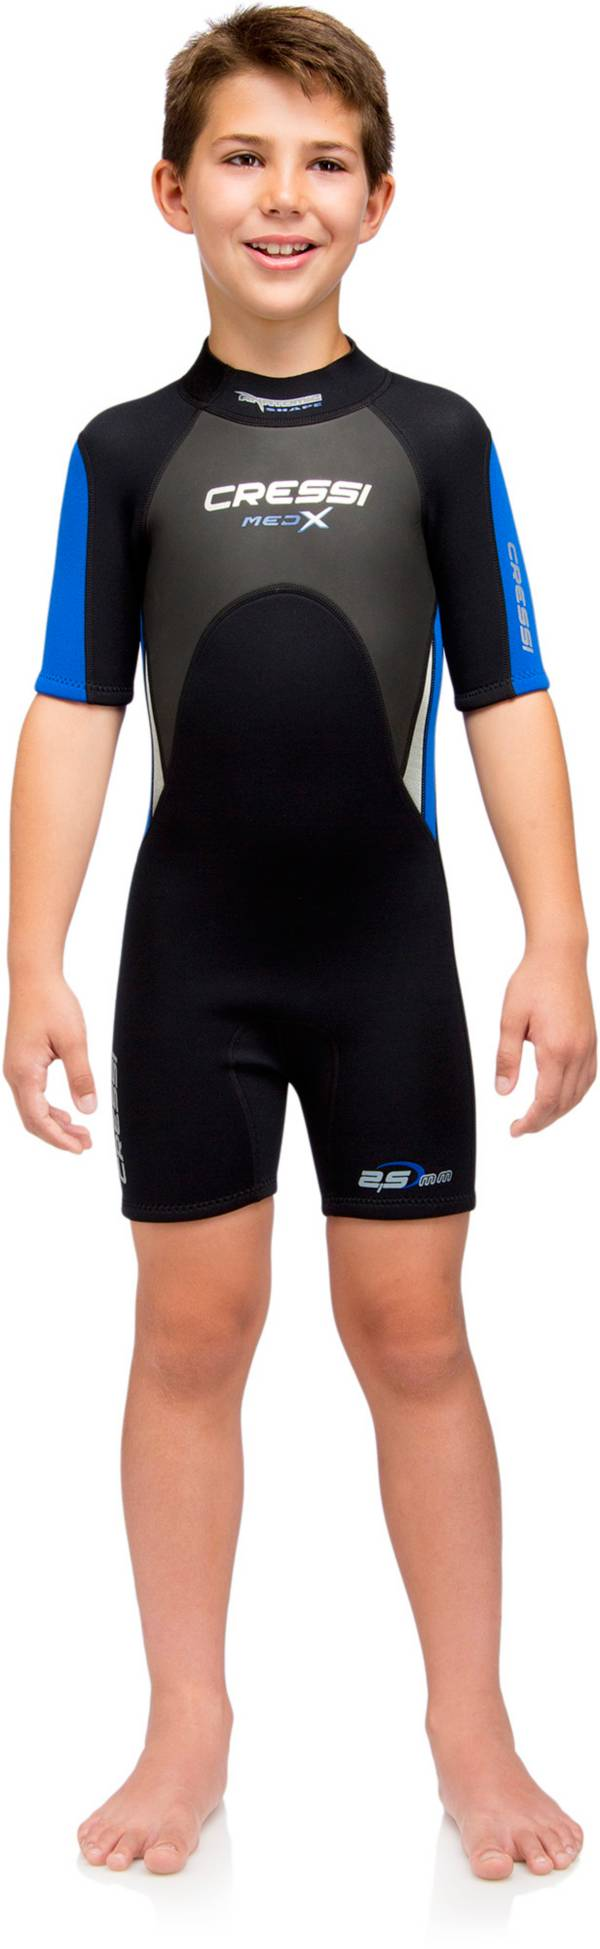 Cressi Youth Med X Shorty Wetsuit product image